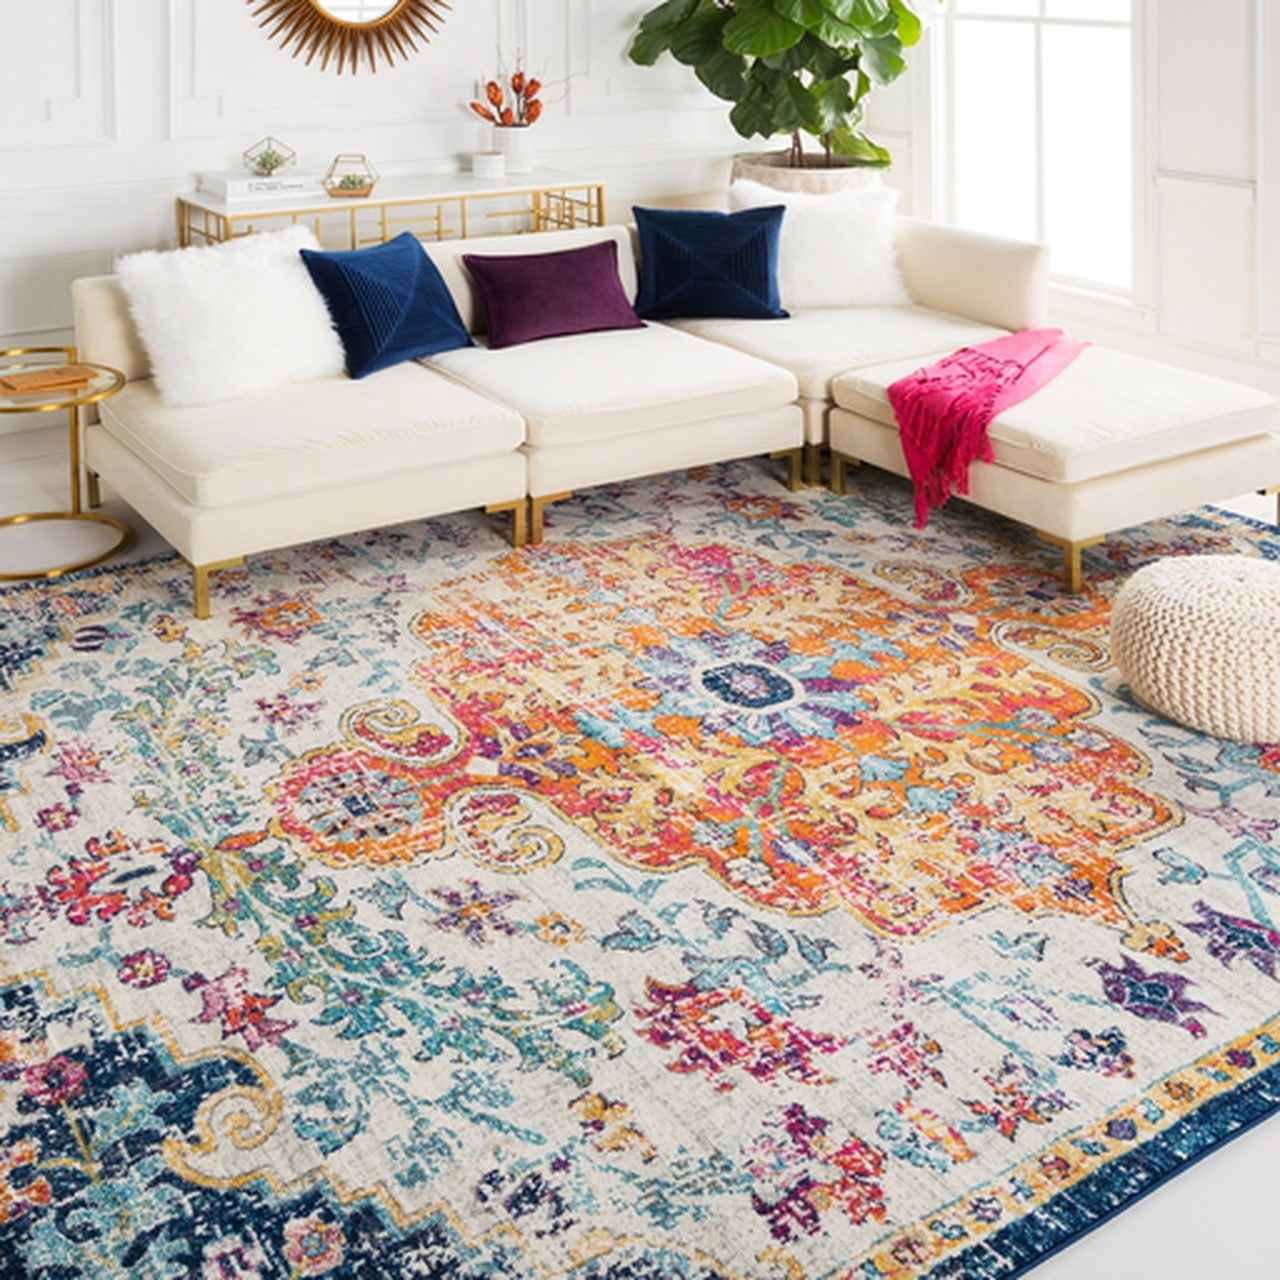 Colorful faux-faded area rug with floral patterns